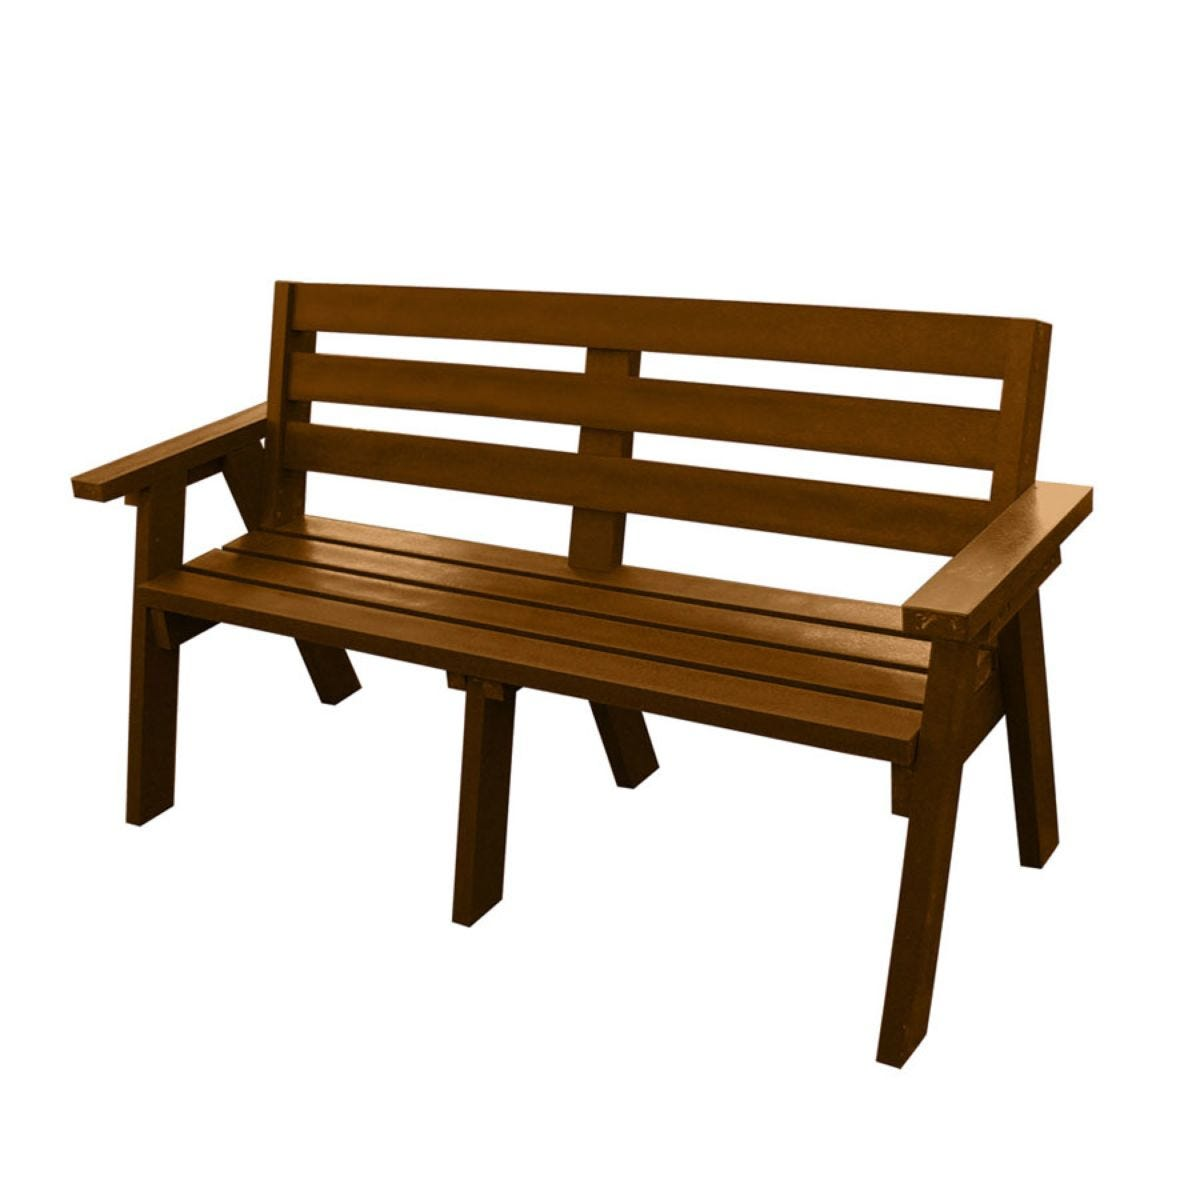 NBB Recycled Captains Treble Bench Seat - Brown